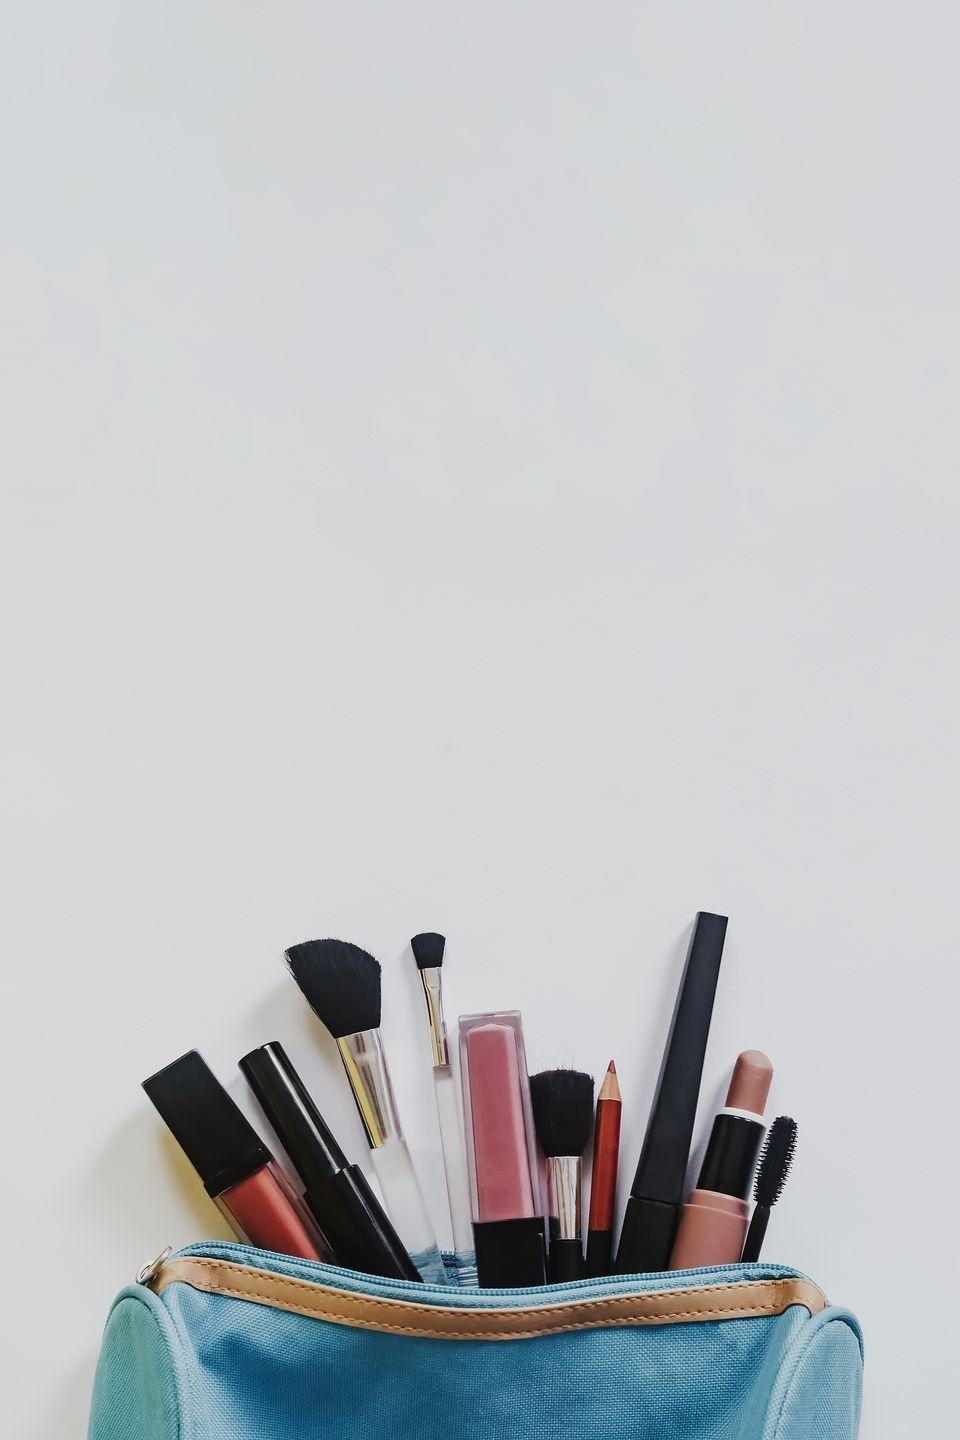 """<p>Beauty products—that is, lotions, <a href=""""https://www.oprahmag.com/beauty/skin-makeup/a22736070/how-to-clean-makeup-brushes/"""" rel=""""nofollow noopener"""" target=""""_blank"""" data-ylk=""""slk:makeup brushes"""" class=""""link rapid-noclick-resp"""">makeup brushes</a>, soaps, and other cosmetics—expire after anywhere from six months to a few years, based on product and usage. When organizing, follow this rule of thumb: If it looks, smells, or feels weird, toss it.</p>"""